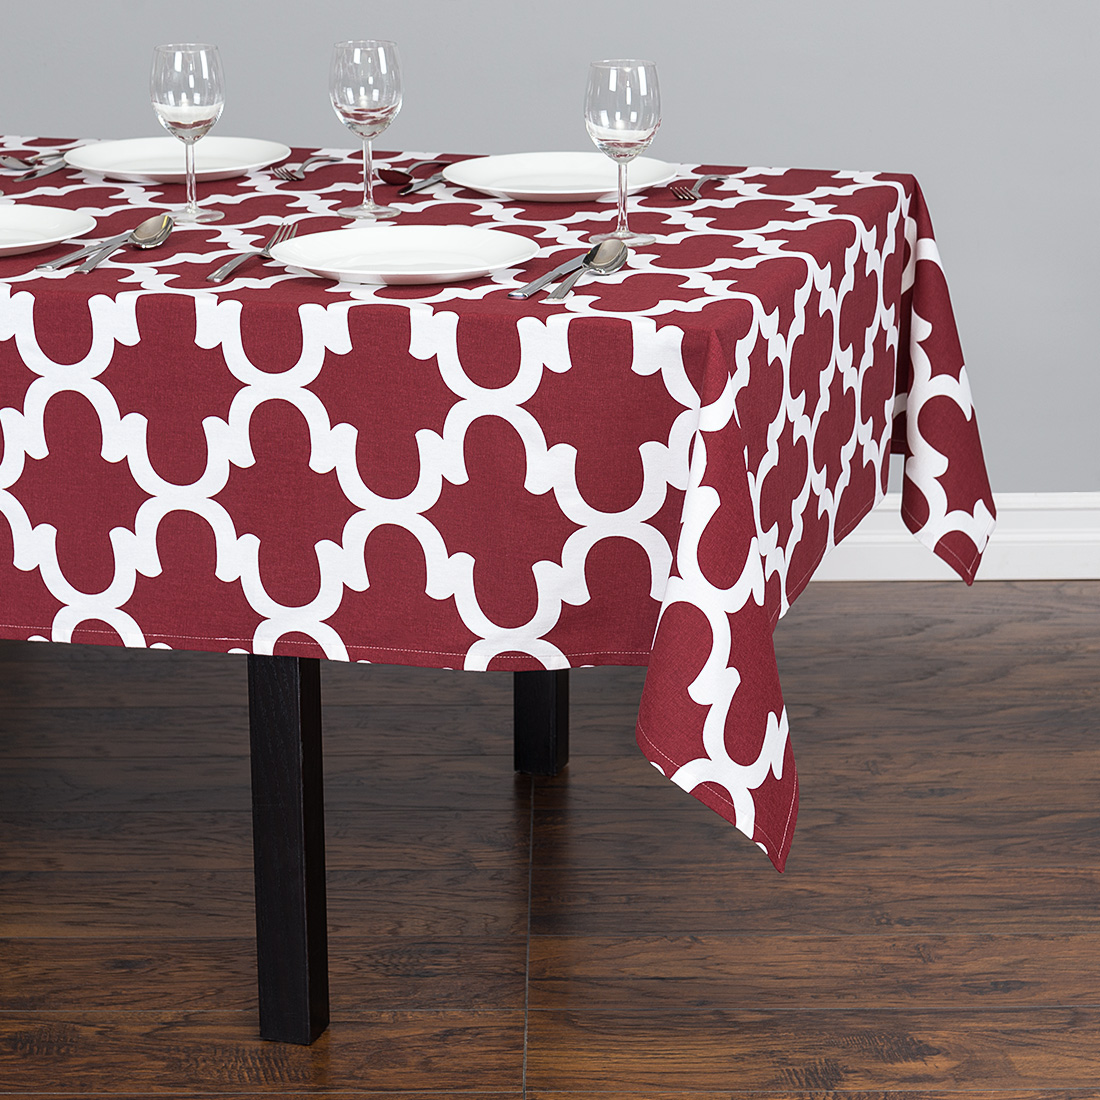 60 x 84 in. Trellis Rectangular Cotton Tablecloth Rosewood & White by